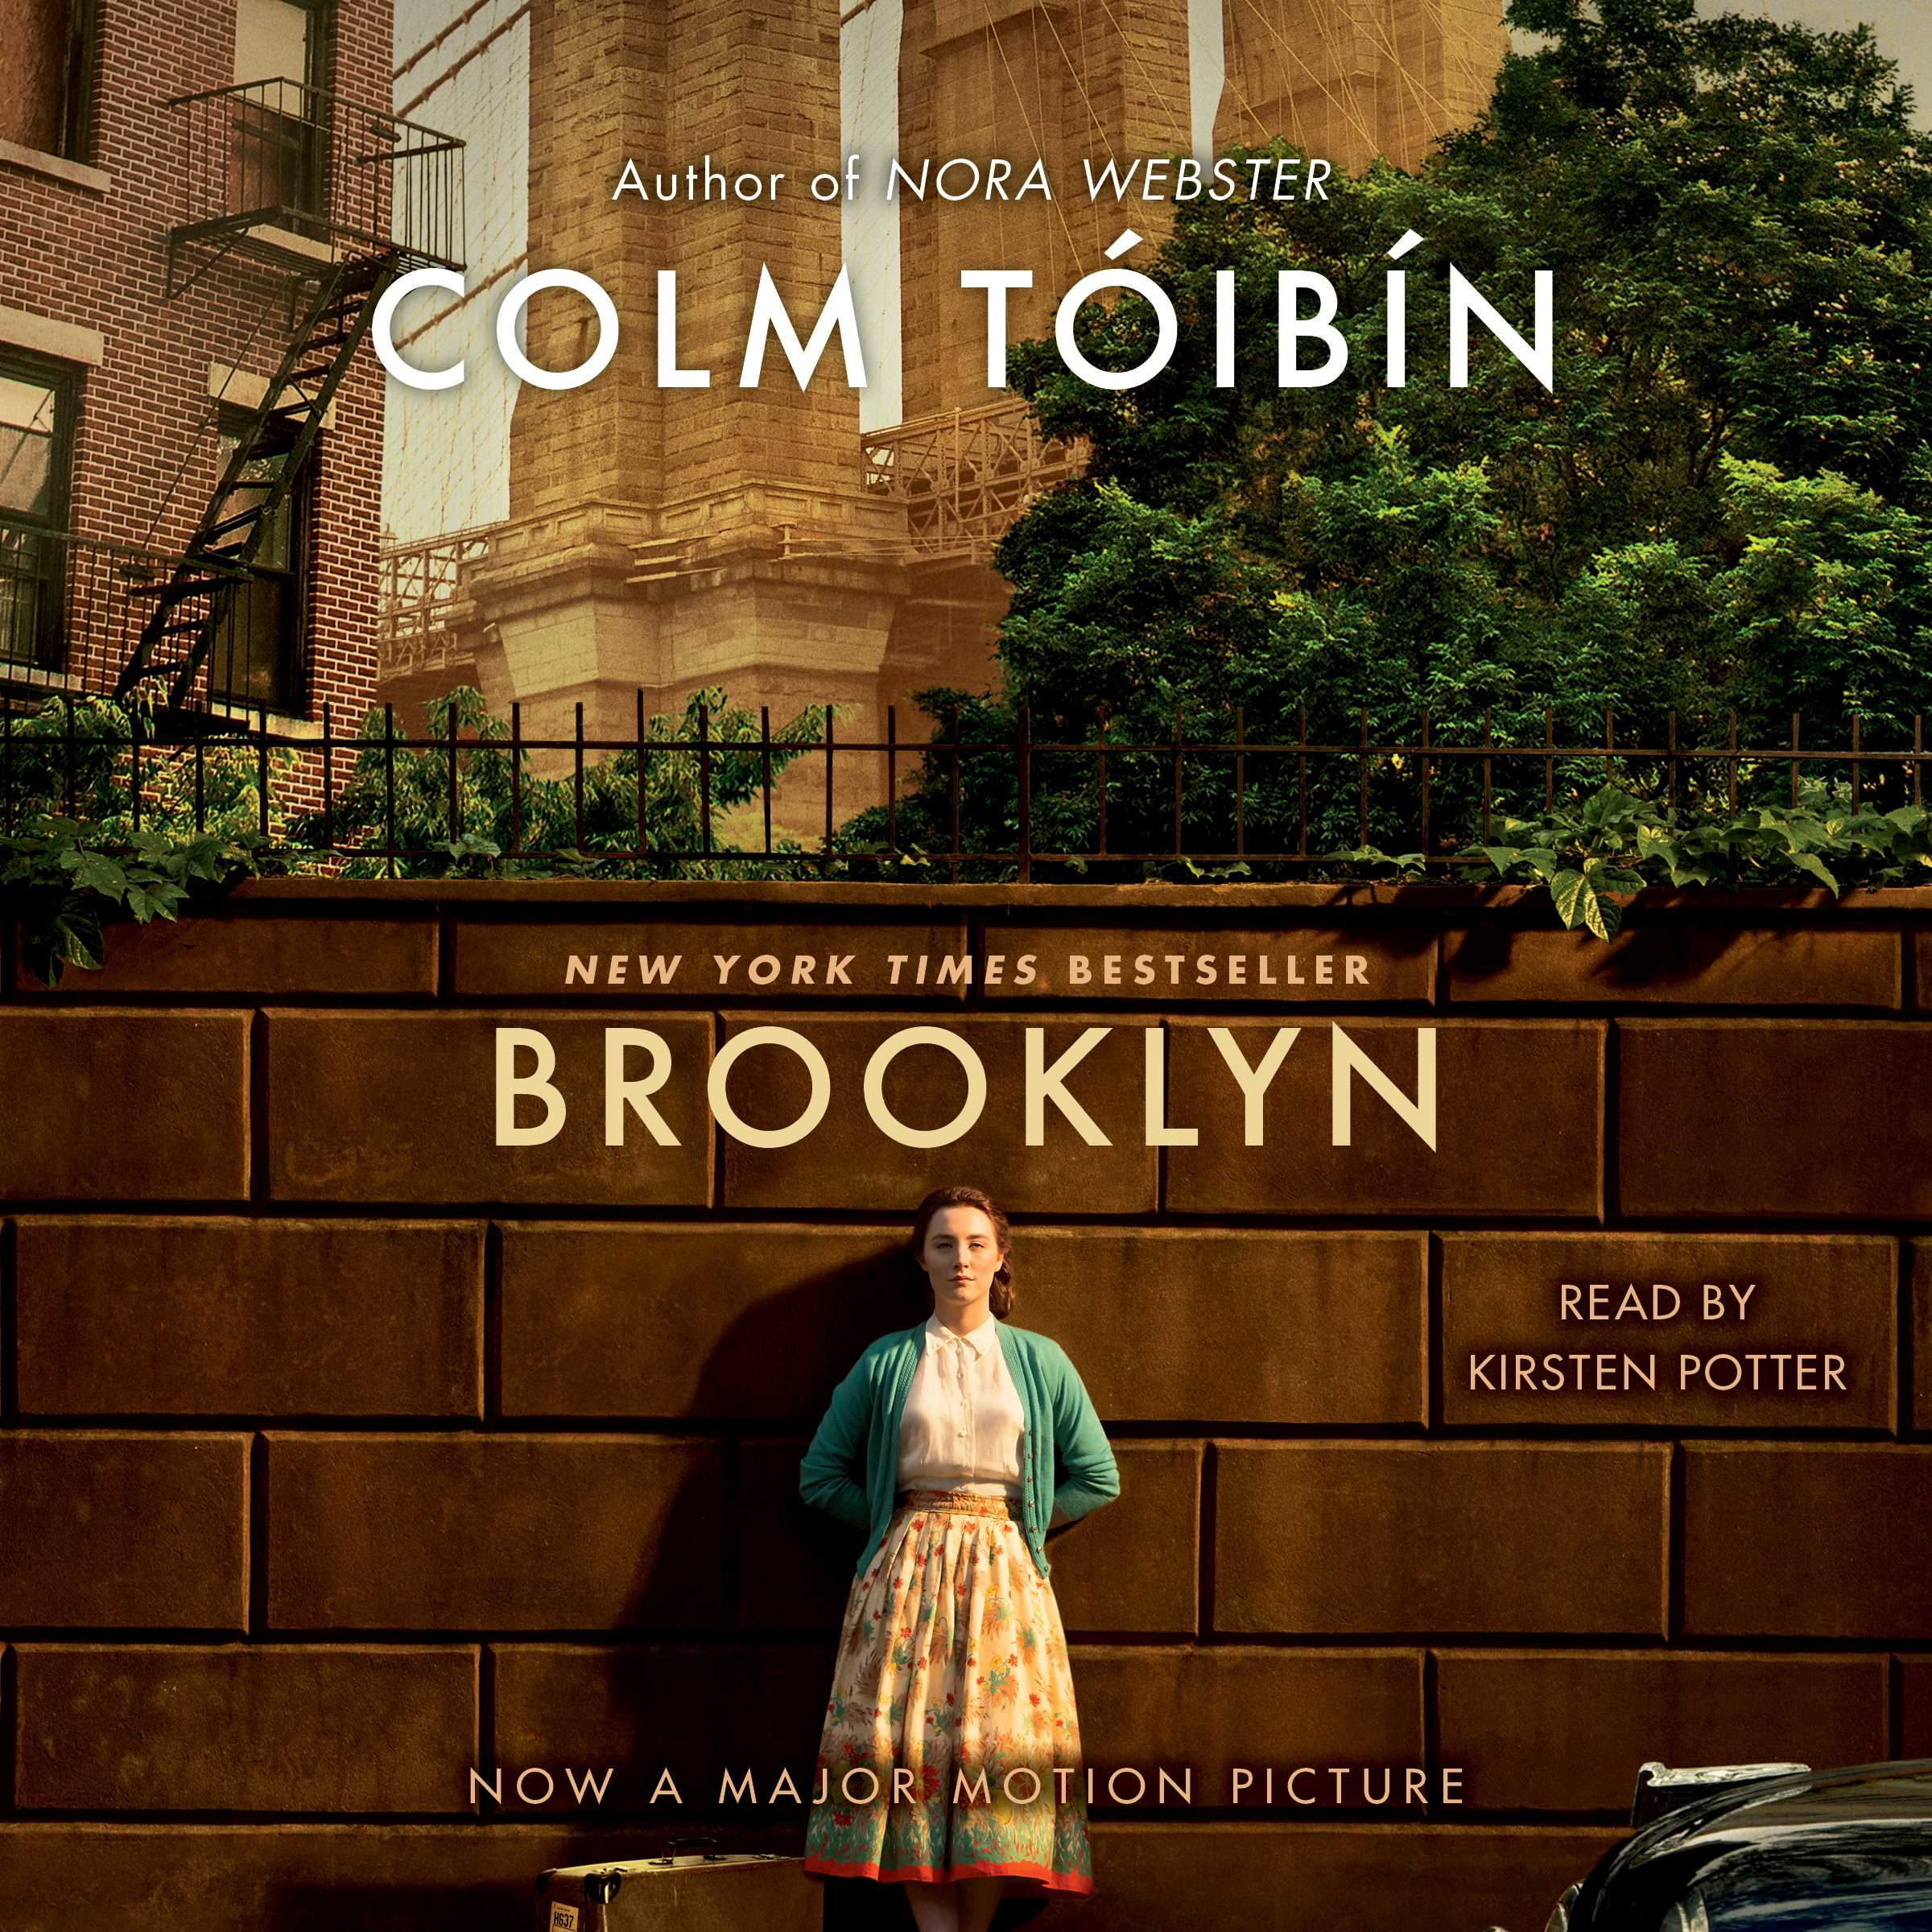 Download new books for free brooklyn (library edition) in french.